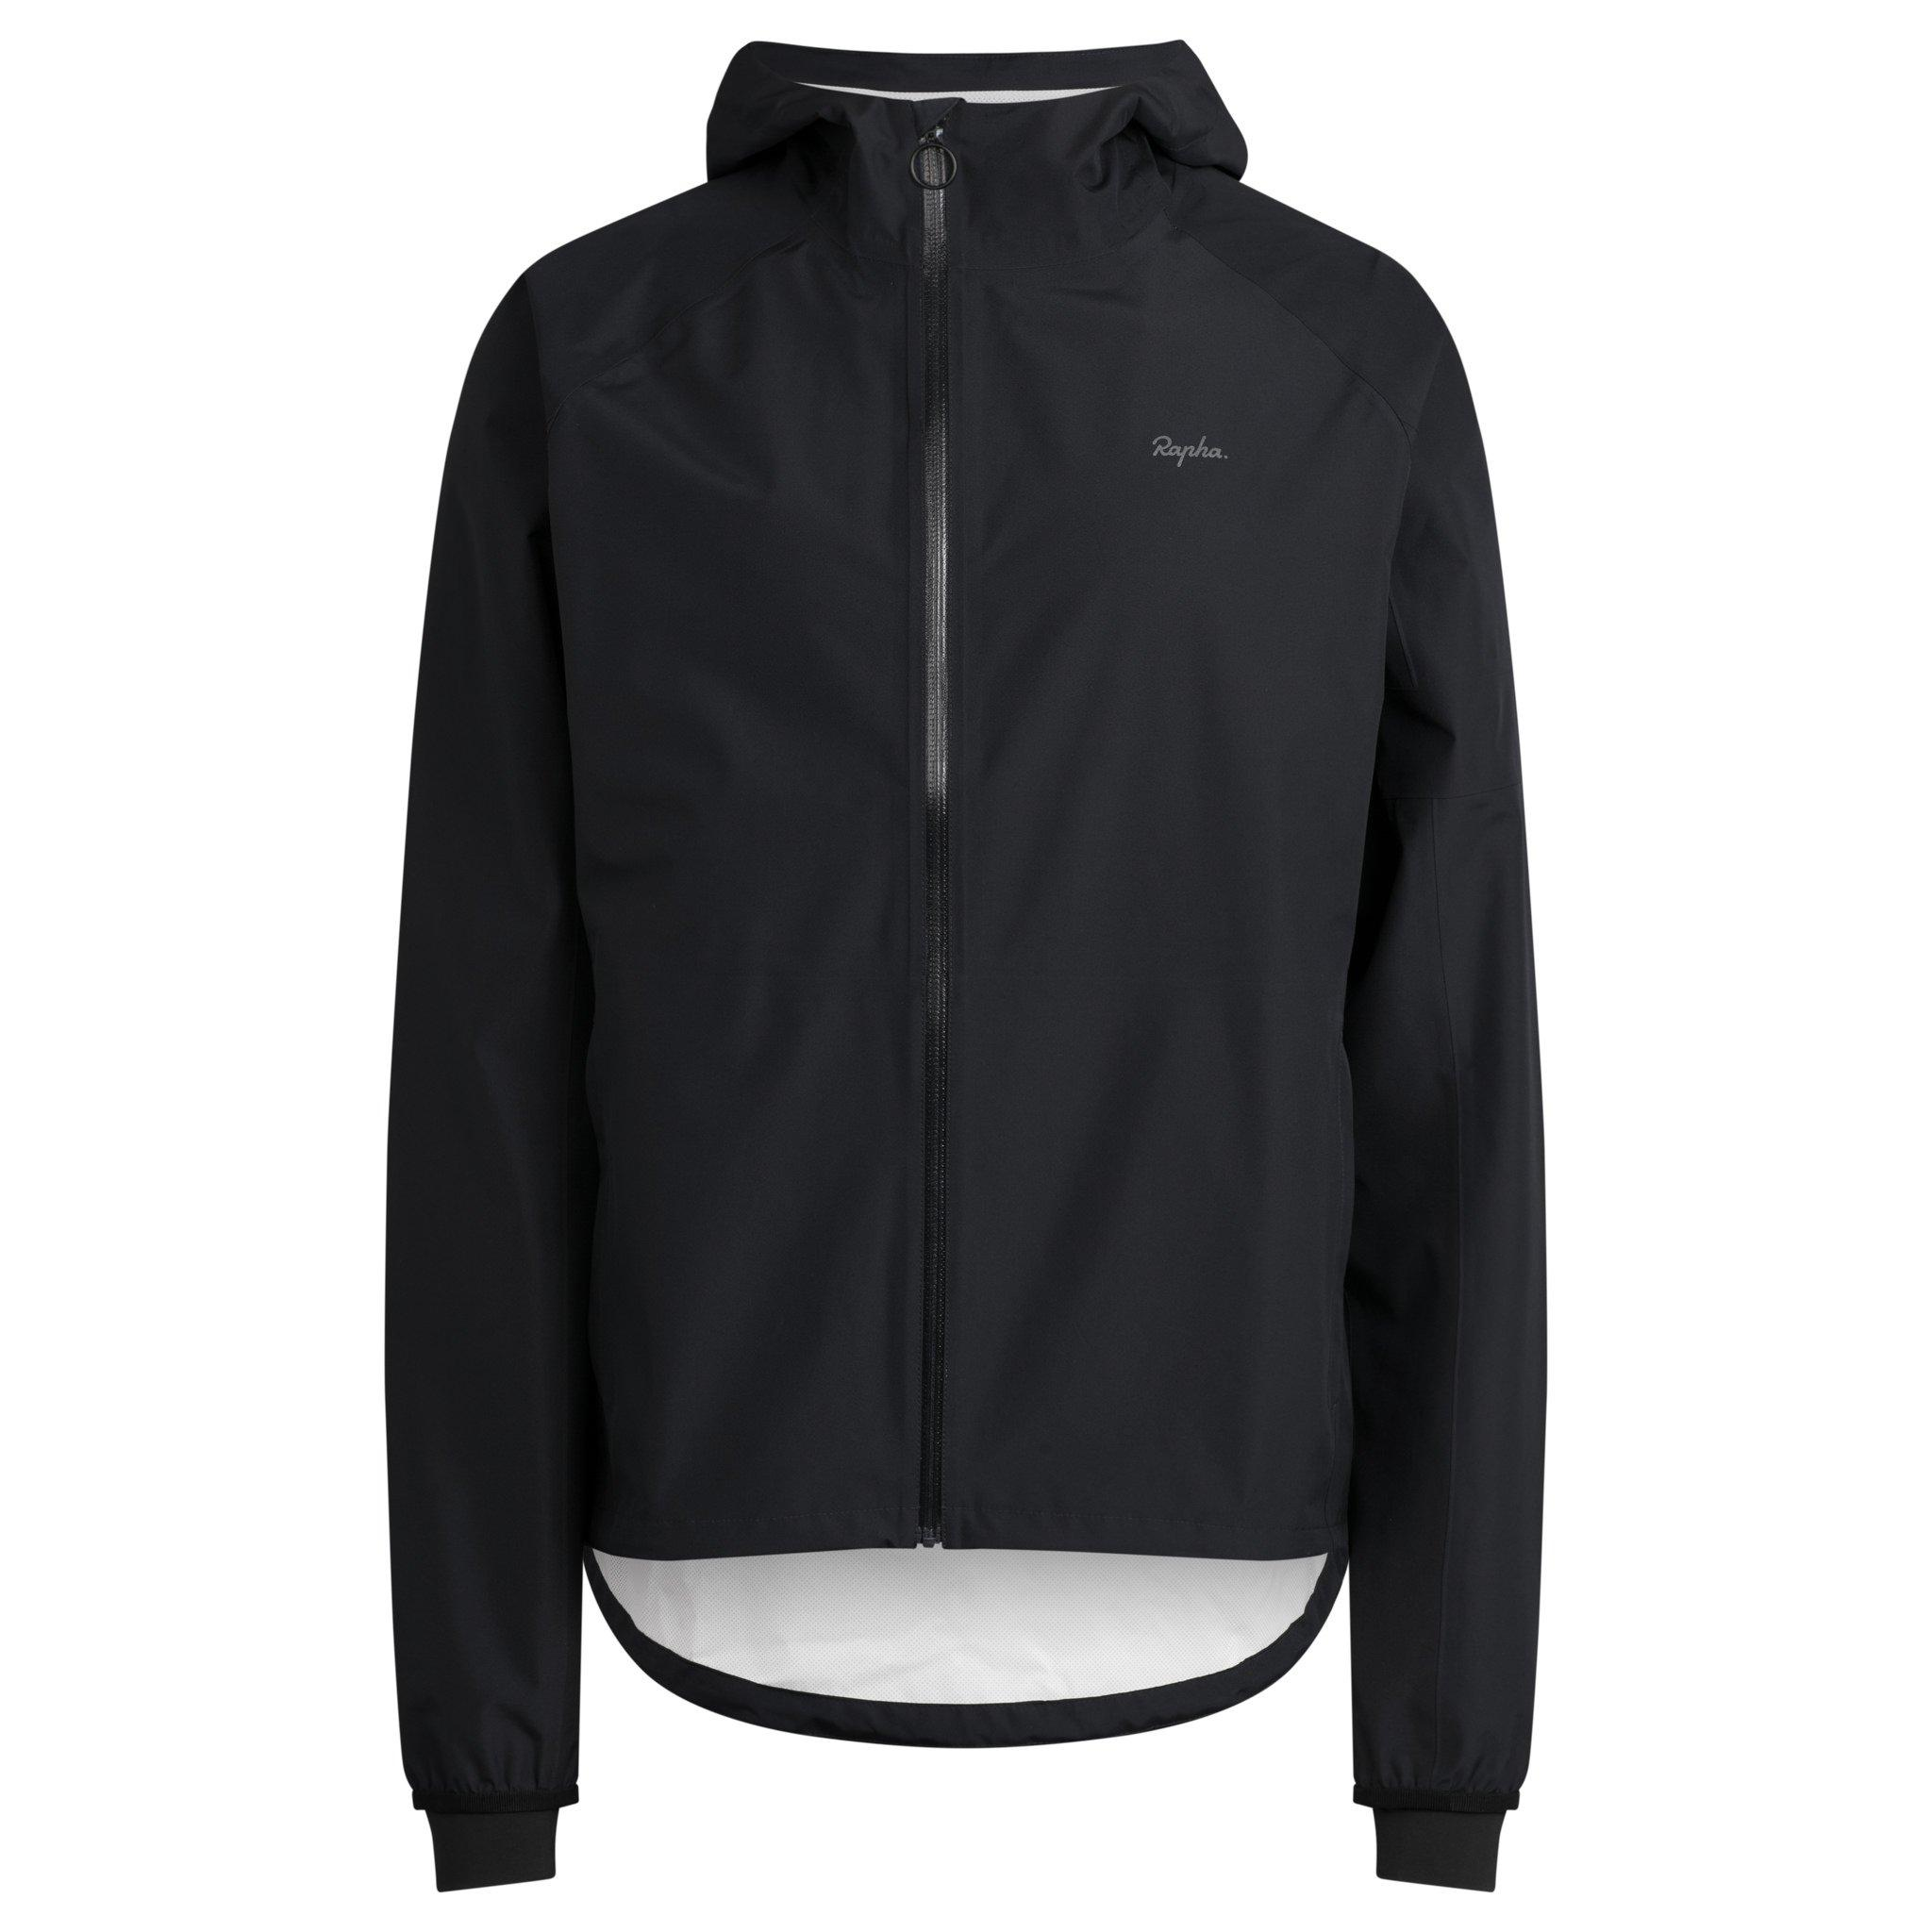 VESTE RAPHA COMMUTER JACKET